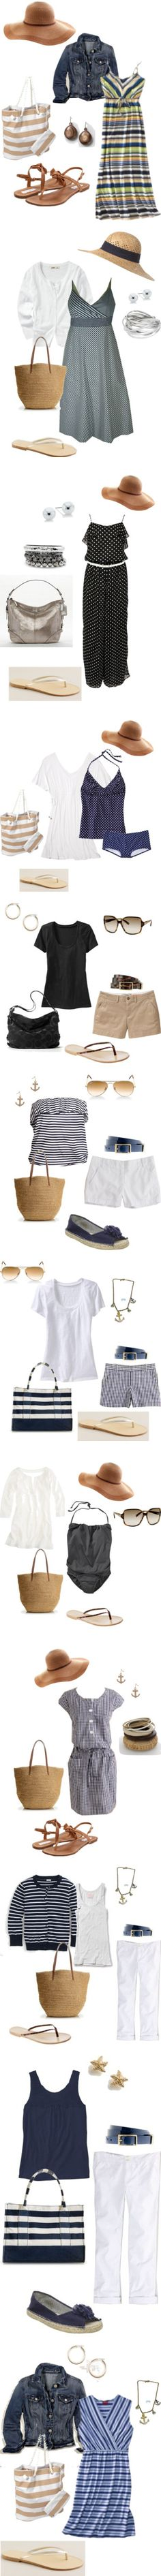 """Mexican Cruise 2012"" by teresa-loop on Polyvore"